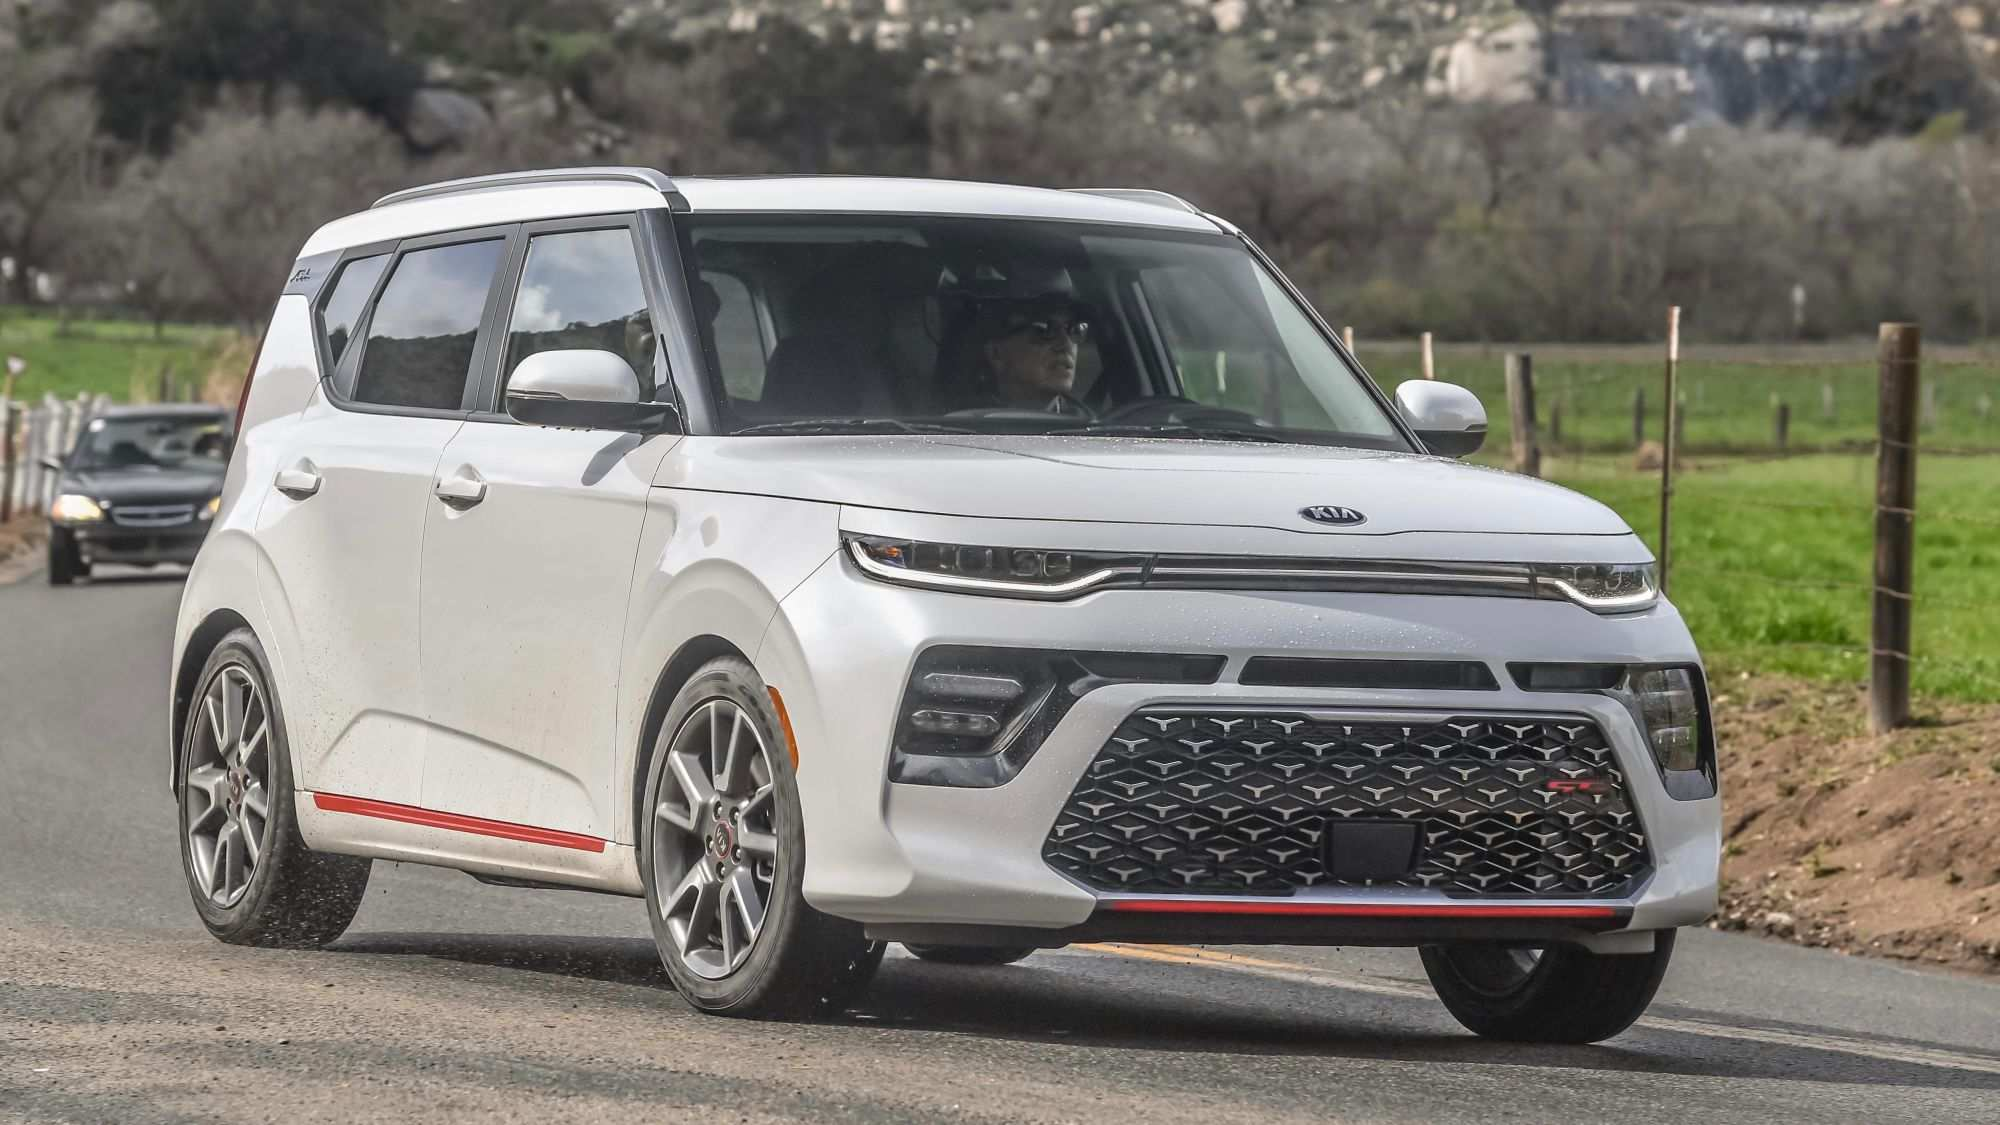 72 Great 2020 Kia Soul Horsepower New Review for 2020 Kia Soul Horsepower